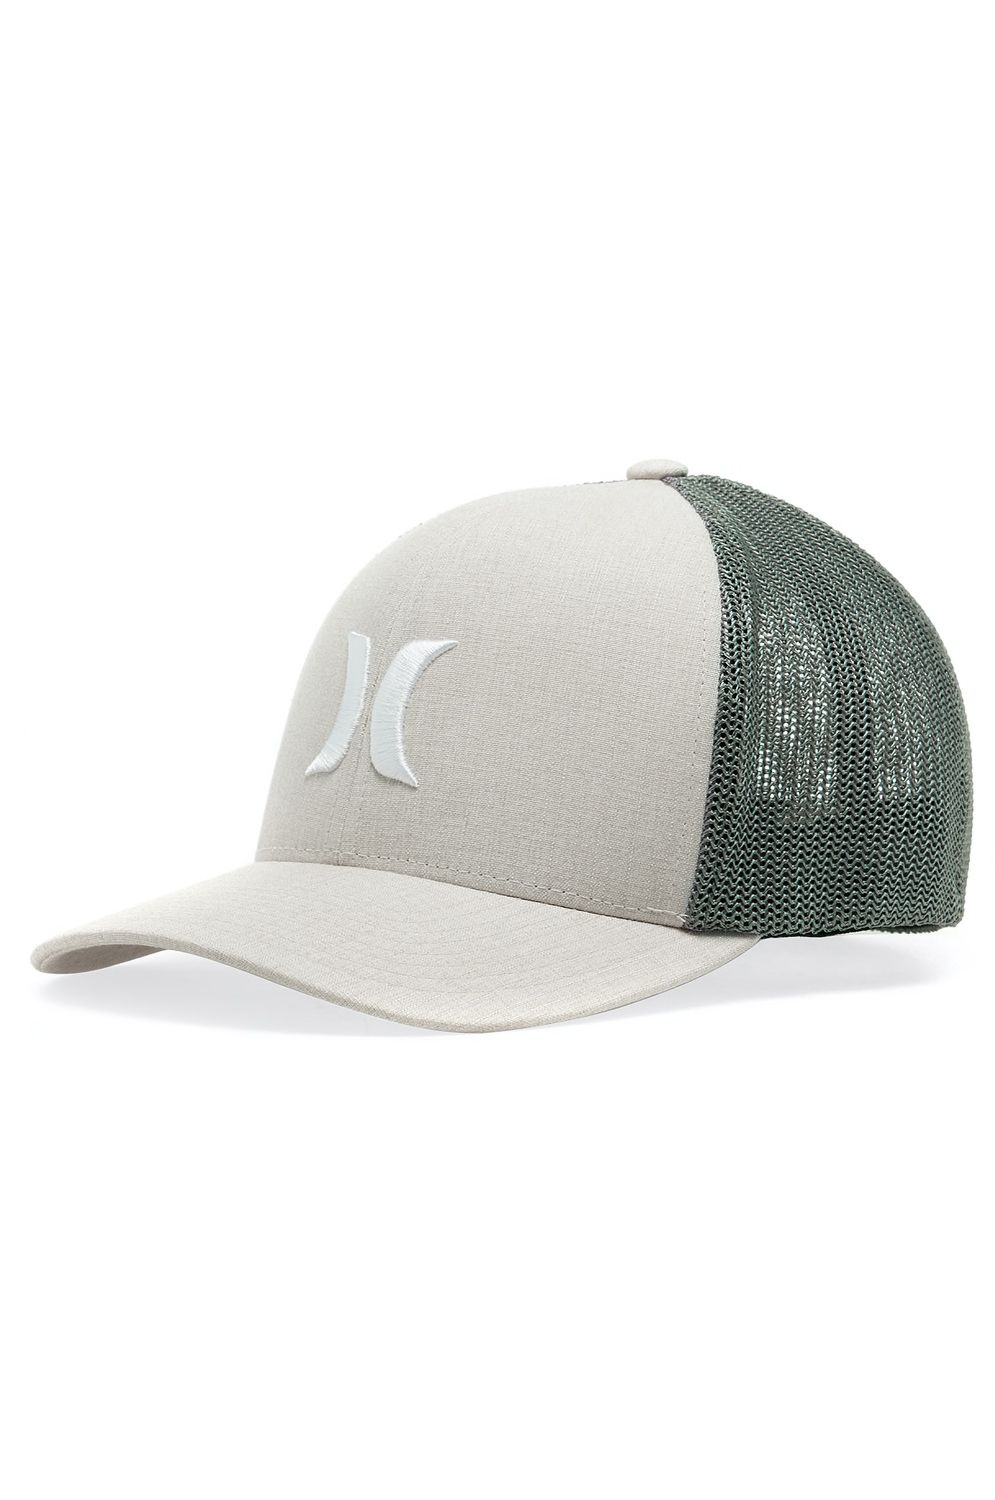 Bone Hurley M ICON TEXTURES HAT Light Bone